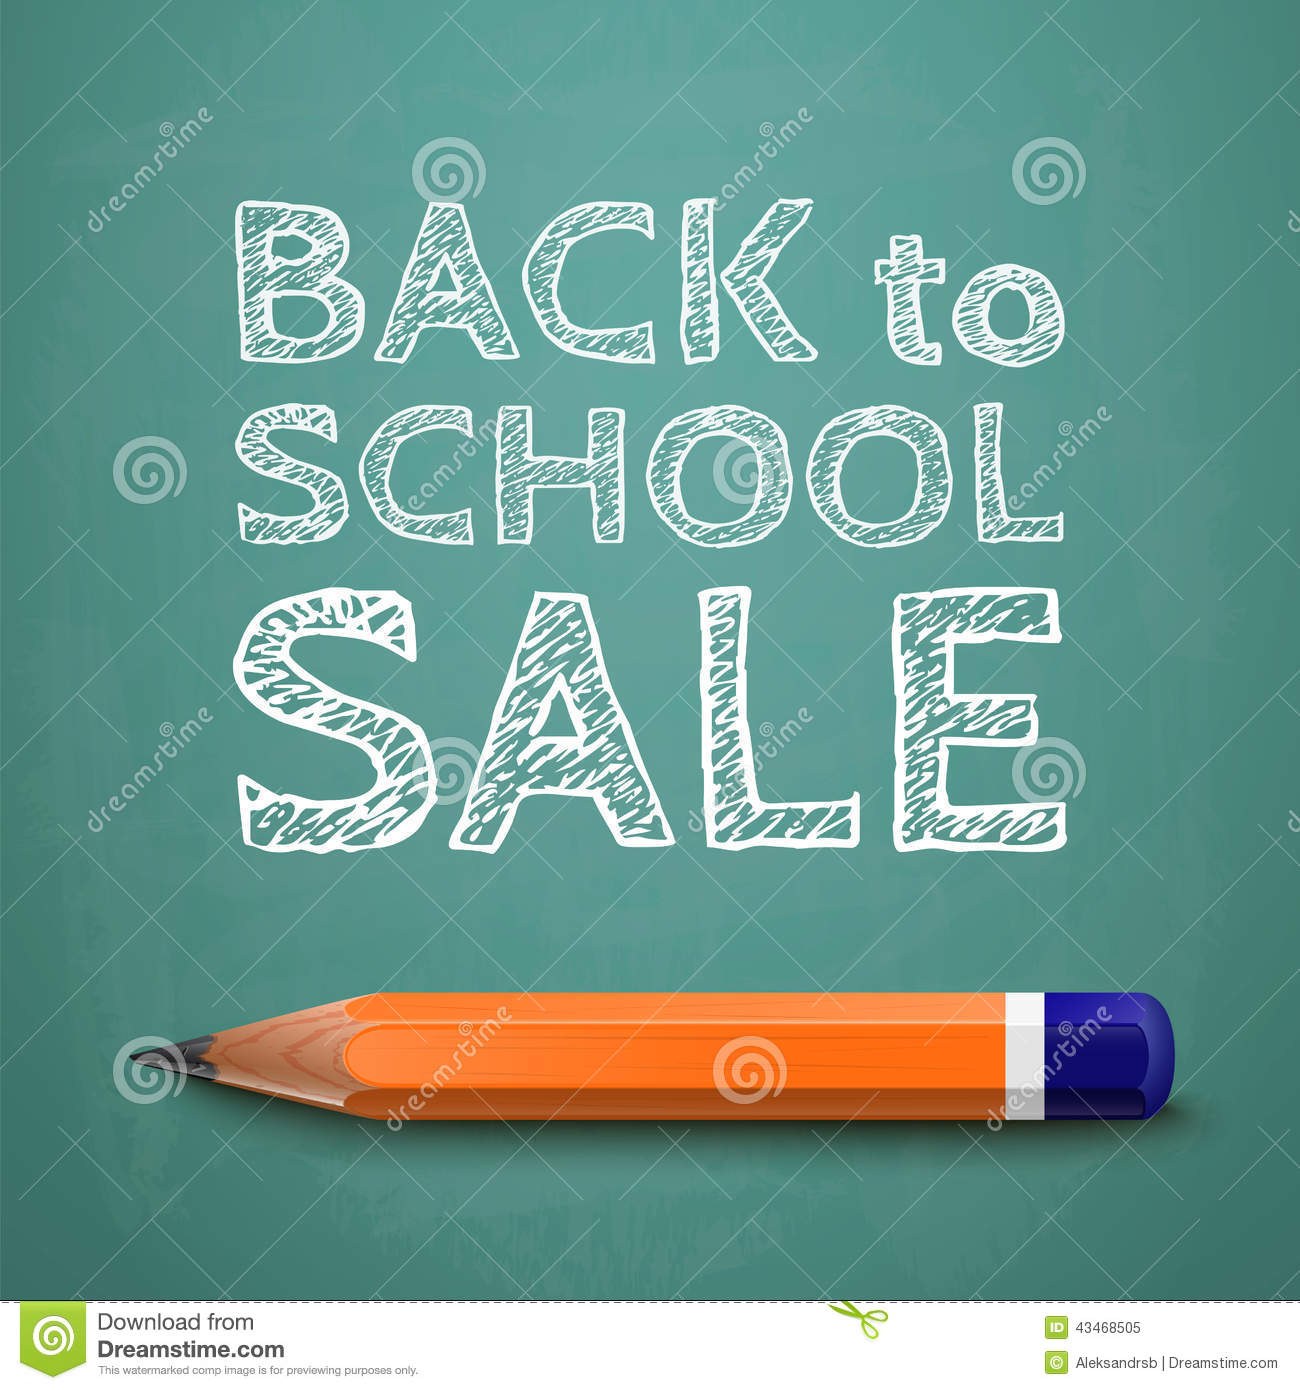 Back to school sale poster with text on chalkboard and pencil vector